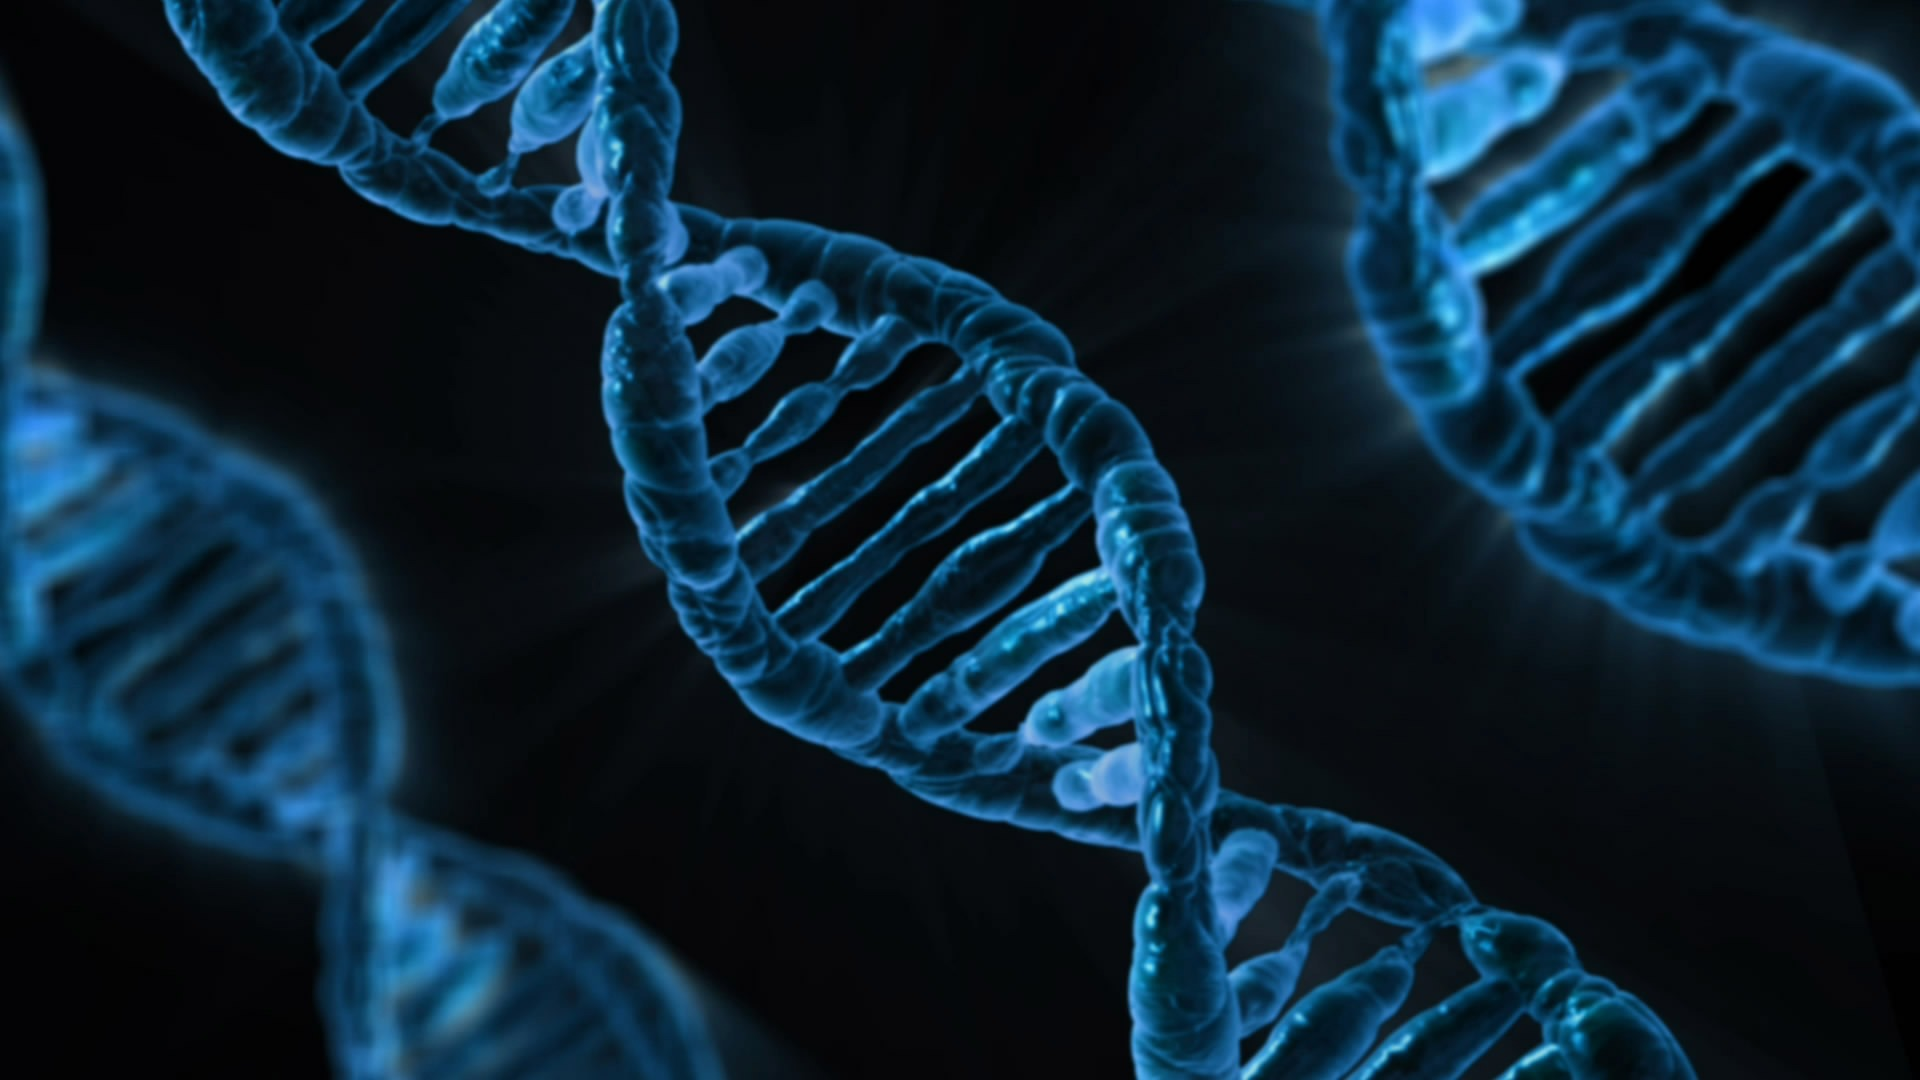 DNA analytics startup Bluebee raises €10M series A round